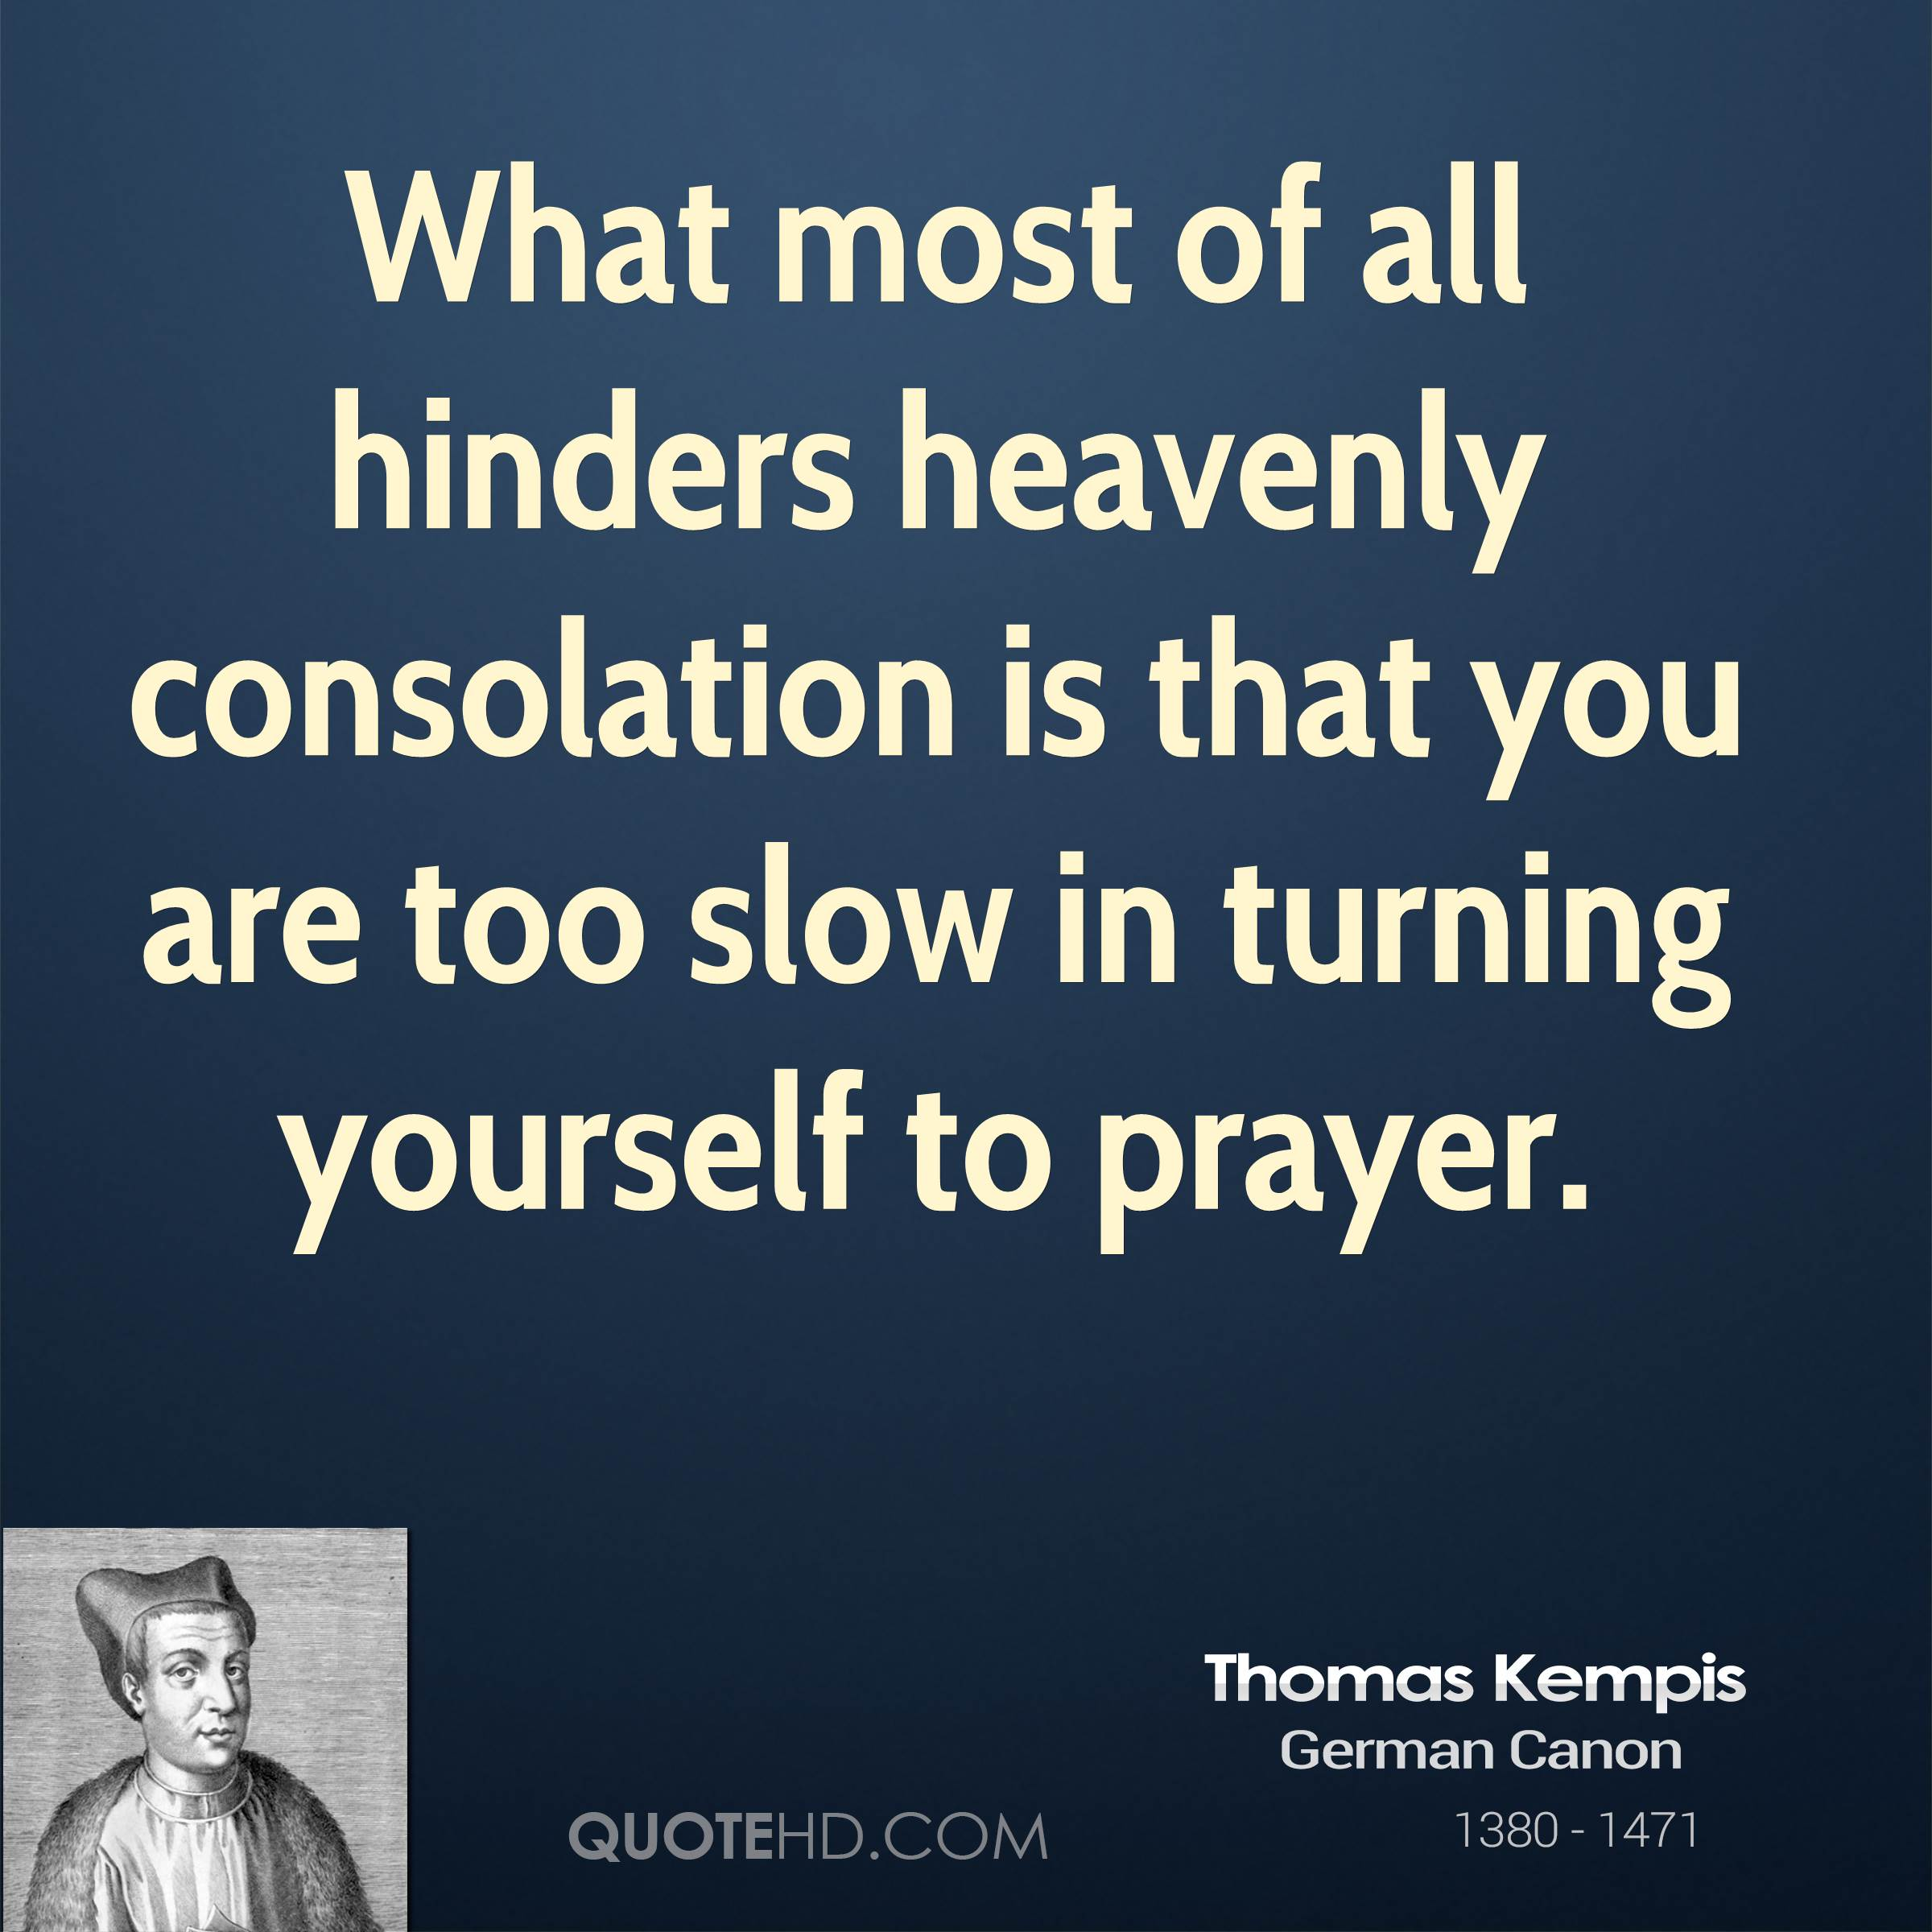 What most of all hinders heavenly consolation is that you are too slow in turning yourself to prayer.